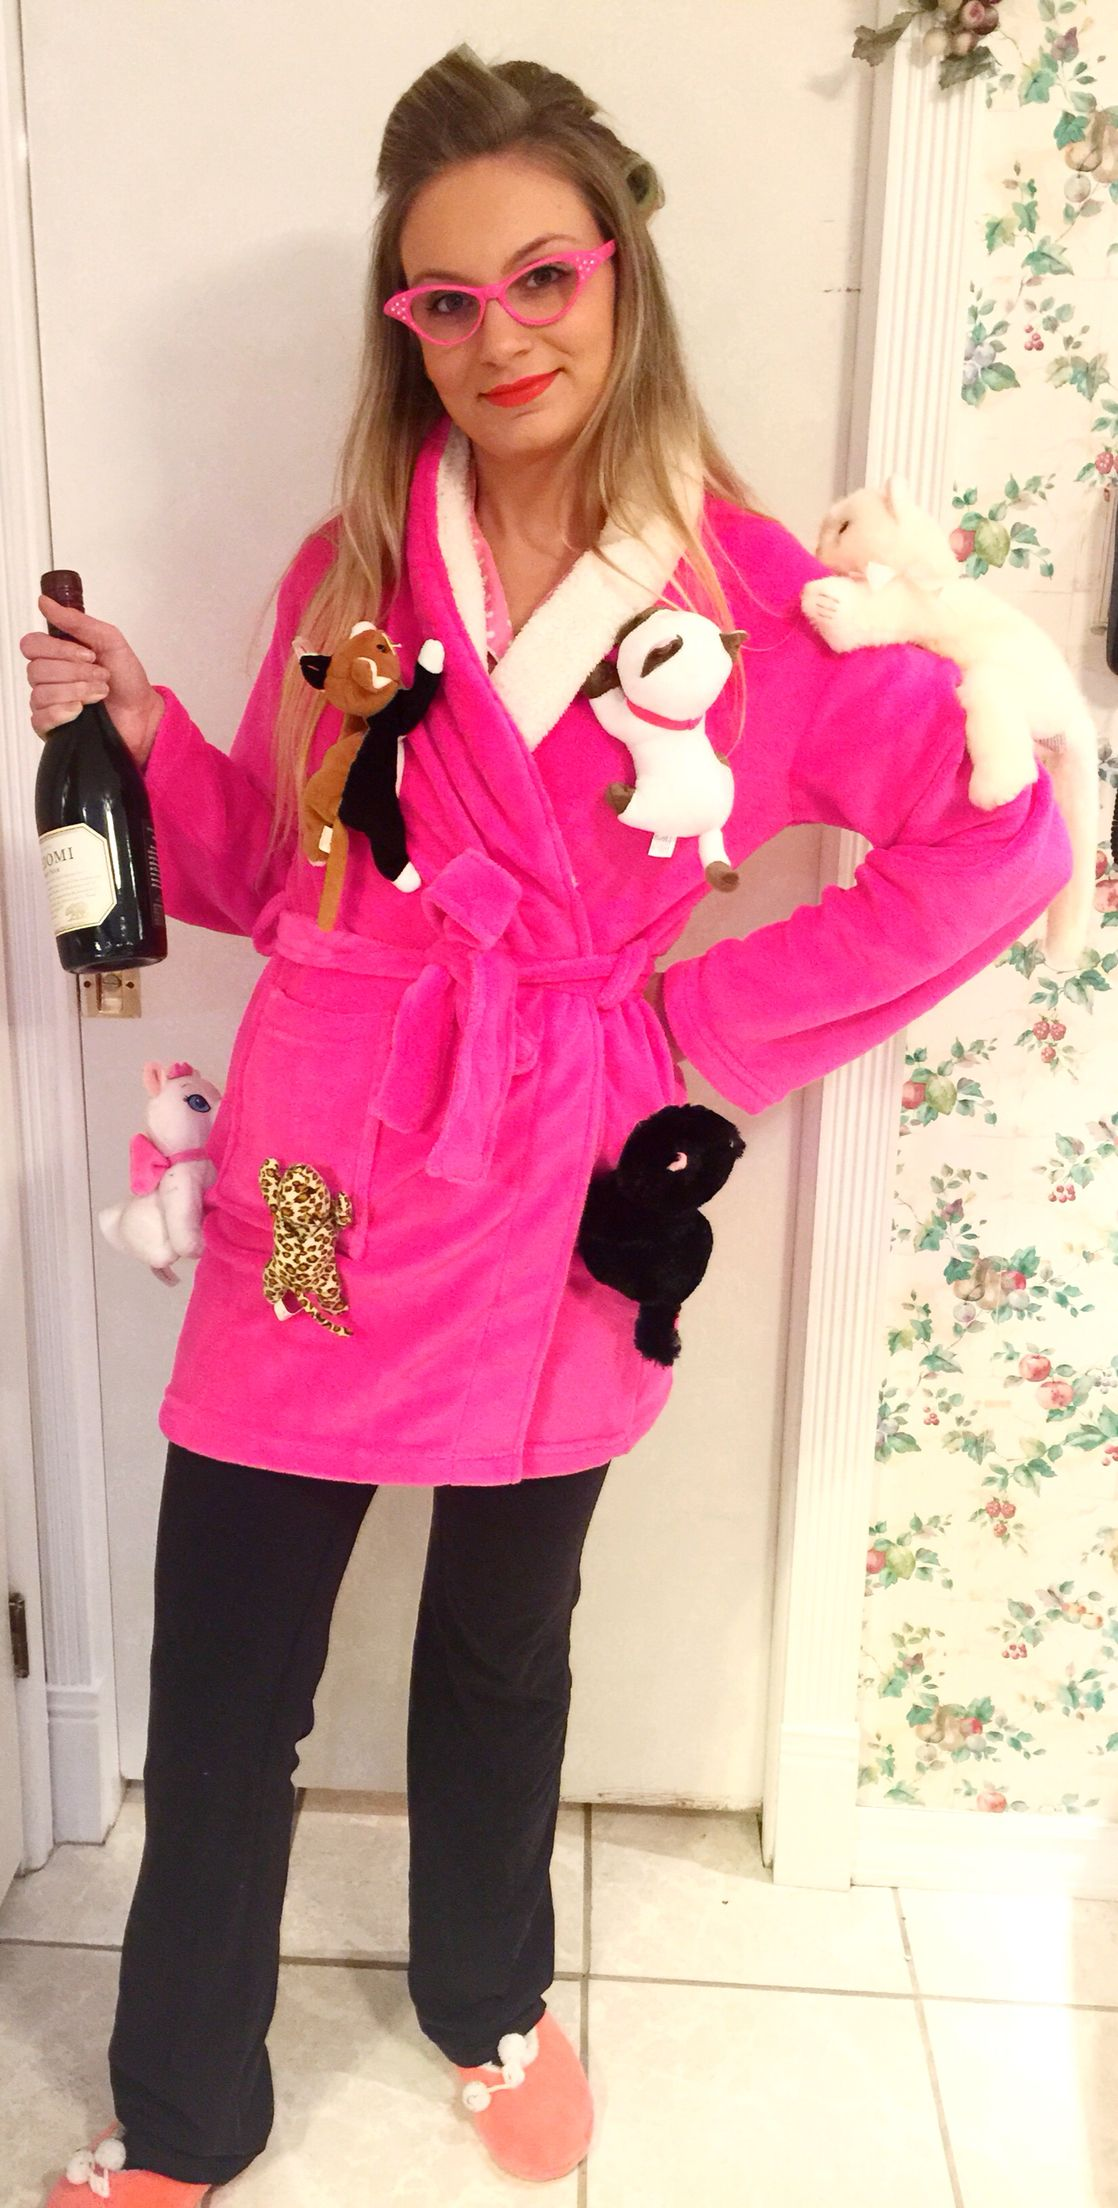 DIY Crazy cat lady costume I bought the robe and glasses